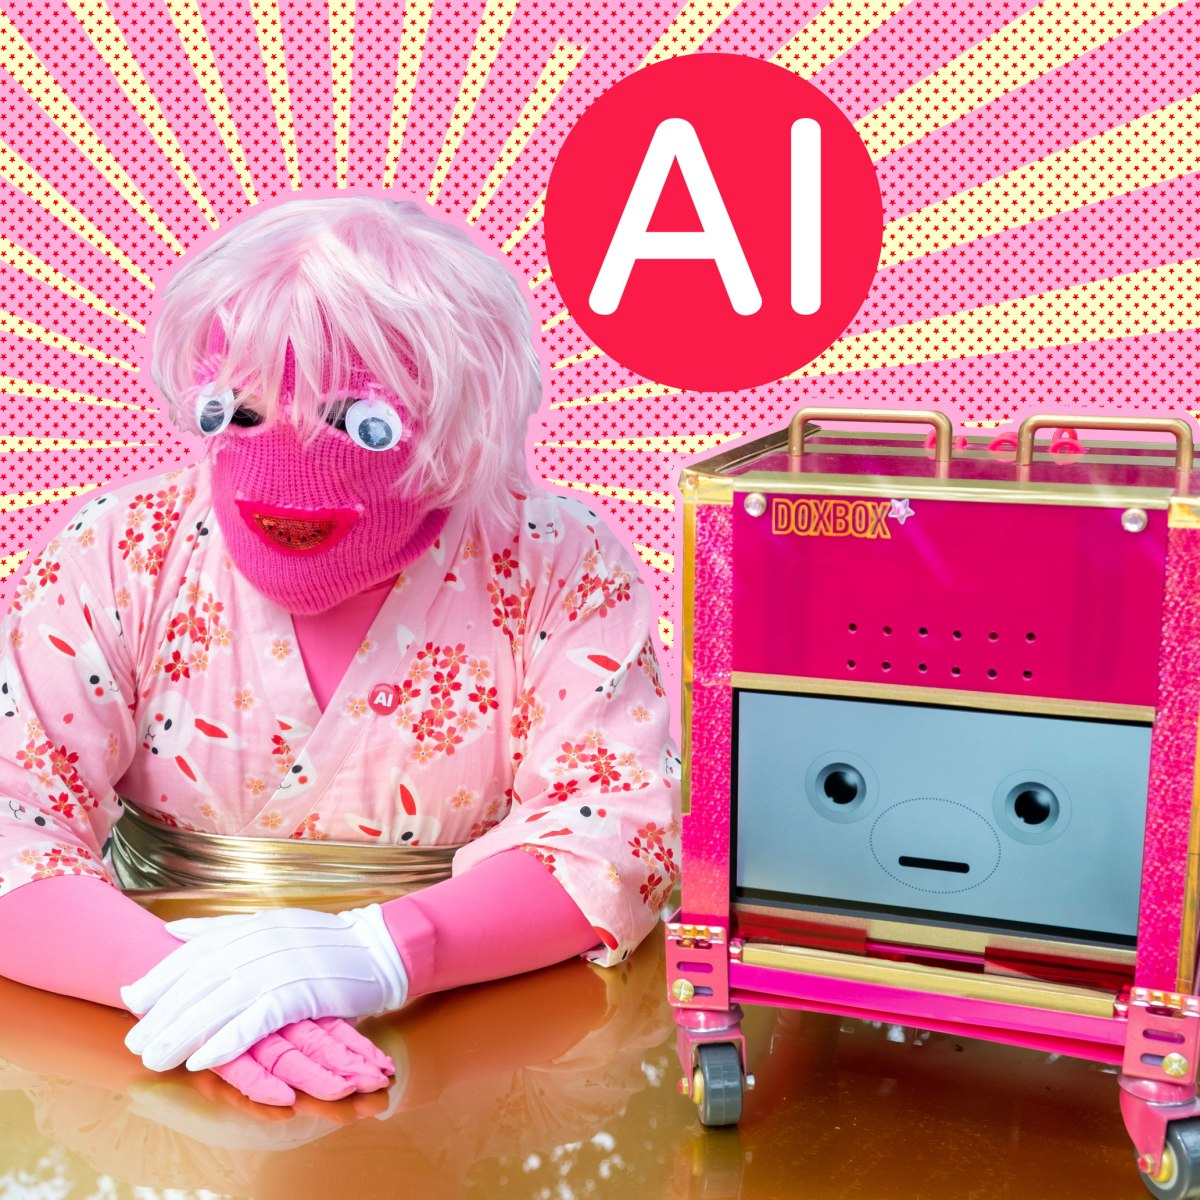 A character with a pink mask, googly eyes, a pink wig, pink kimono and one white glove sits at a gold desk next to a pink robot with a cute face. The letters AI float in a red circle above them.